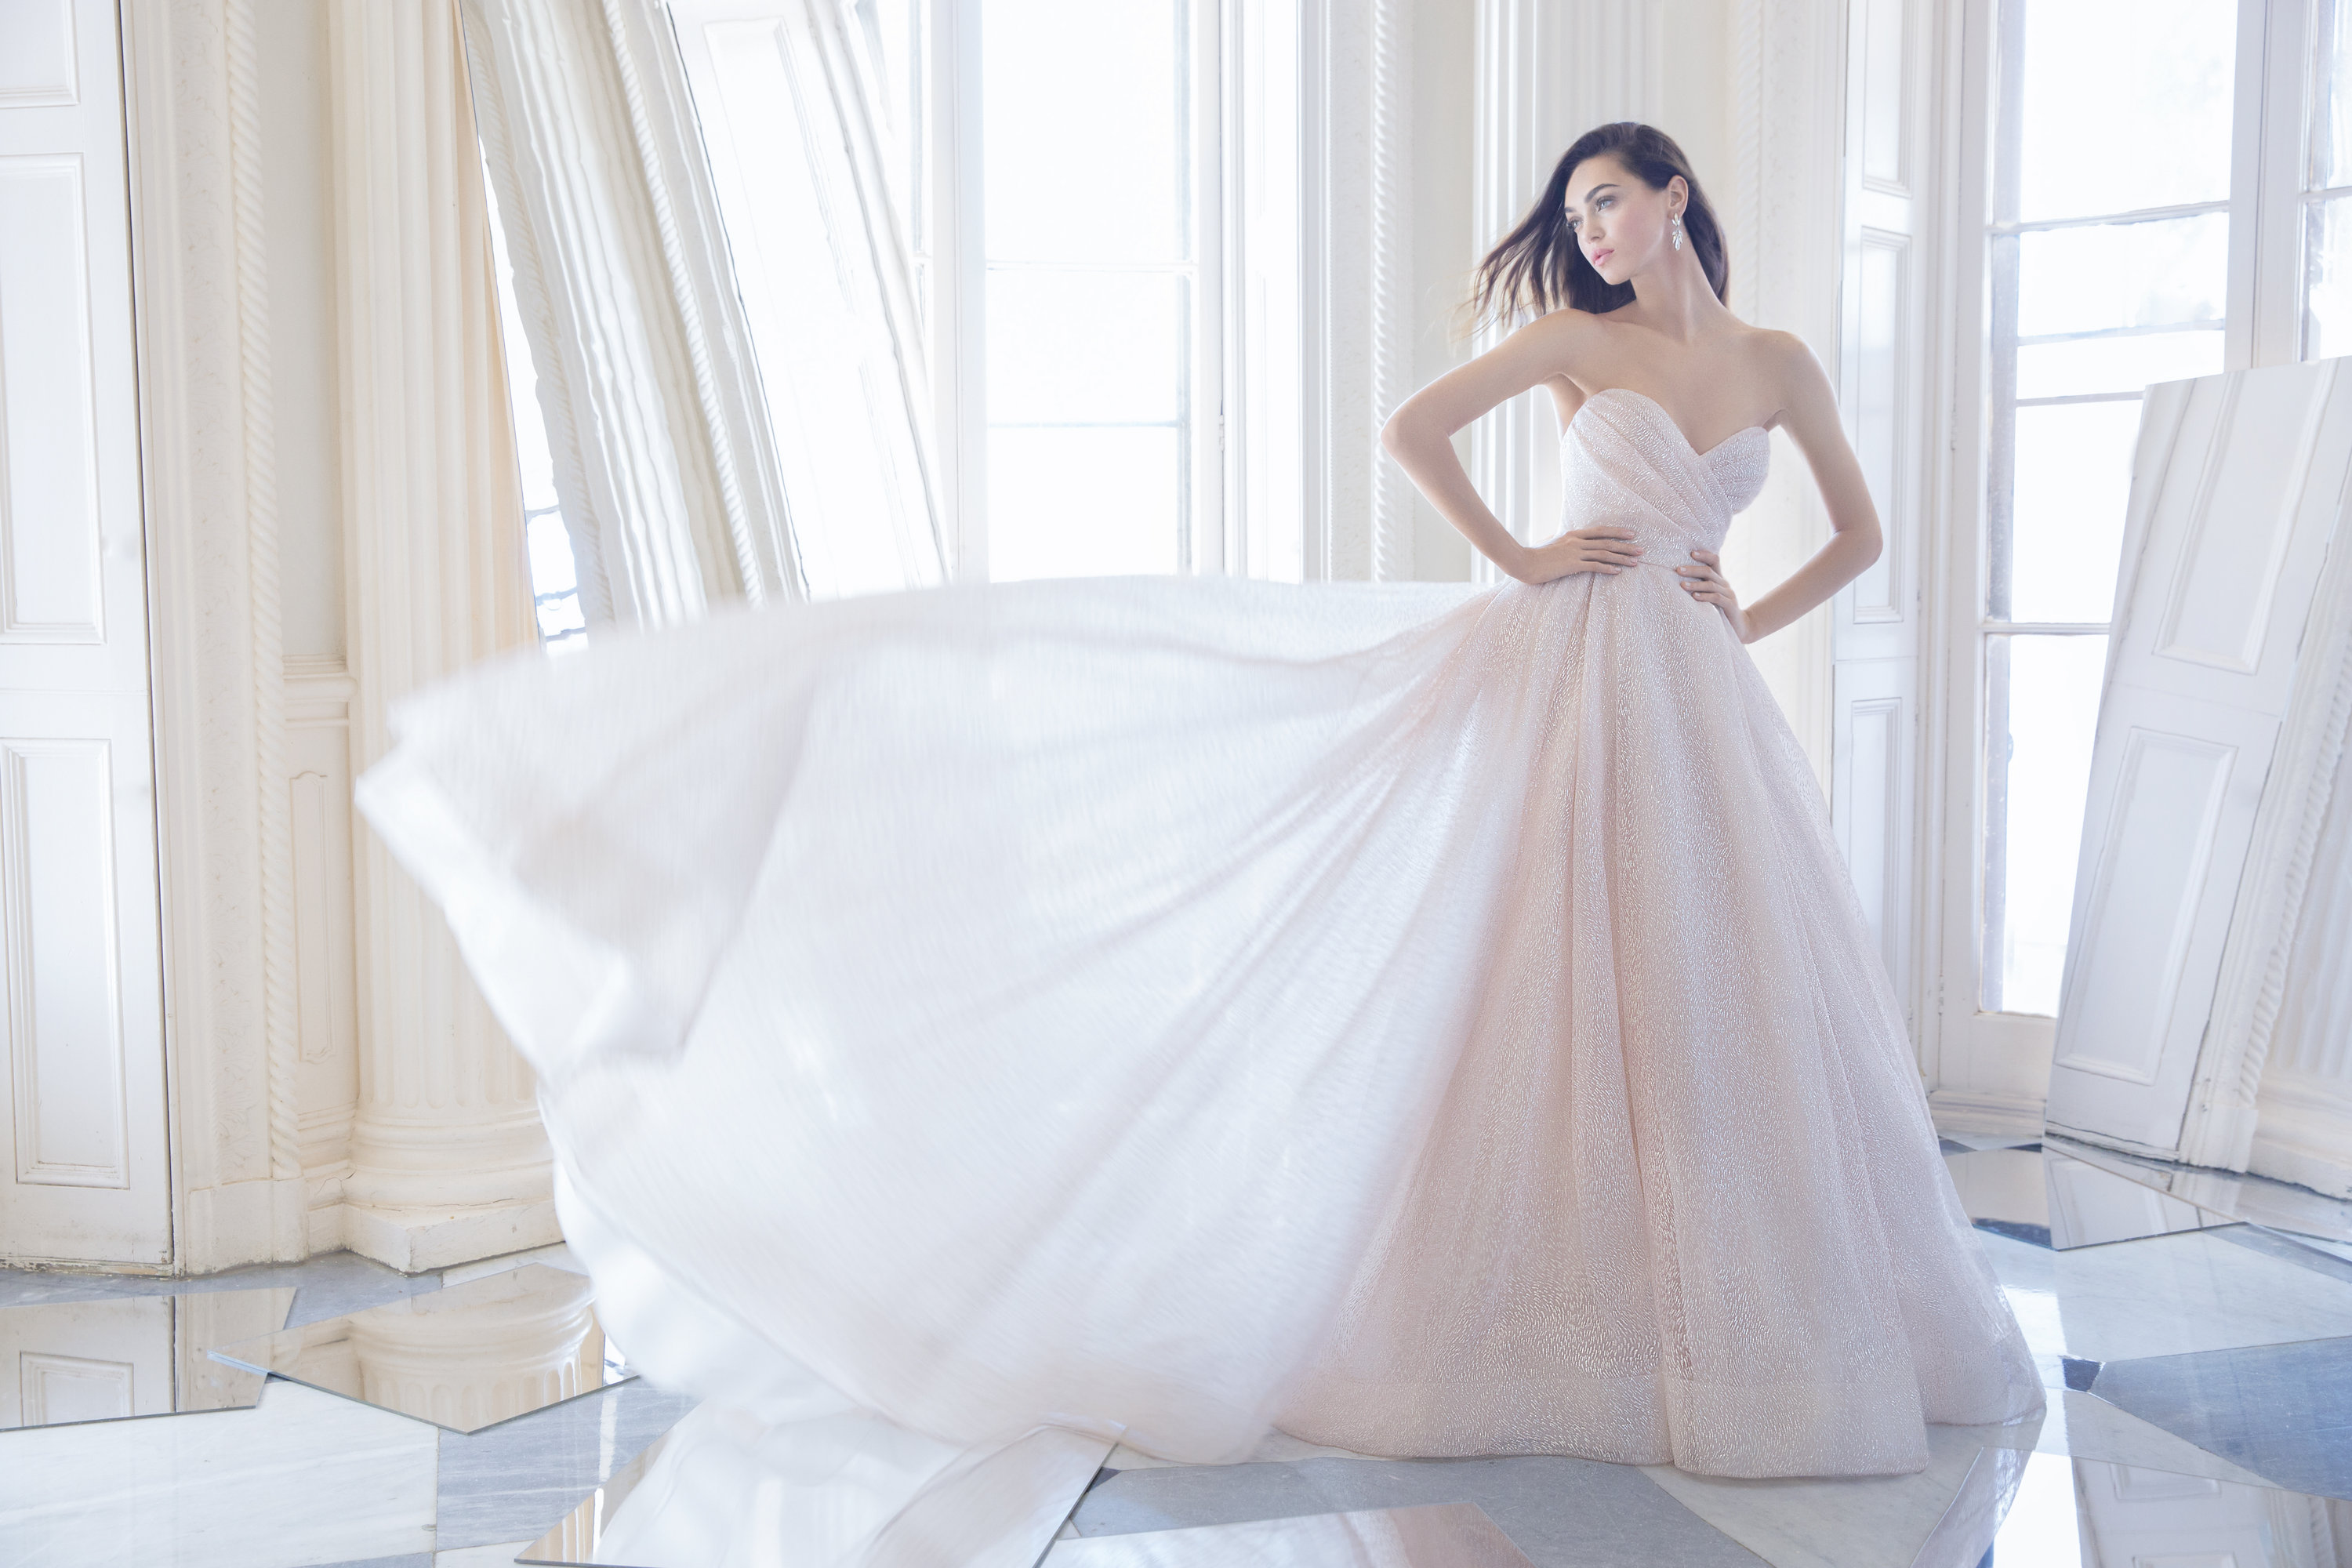 Bridal Gowns and Wedding Dresses by JLM Couture - Style 3810